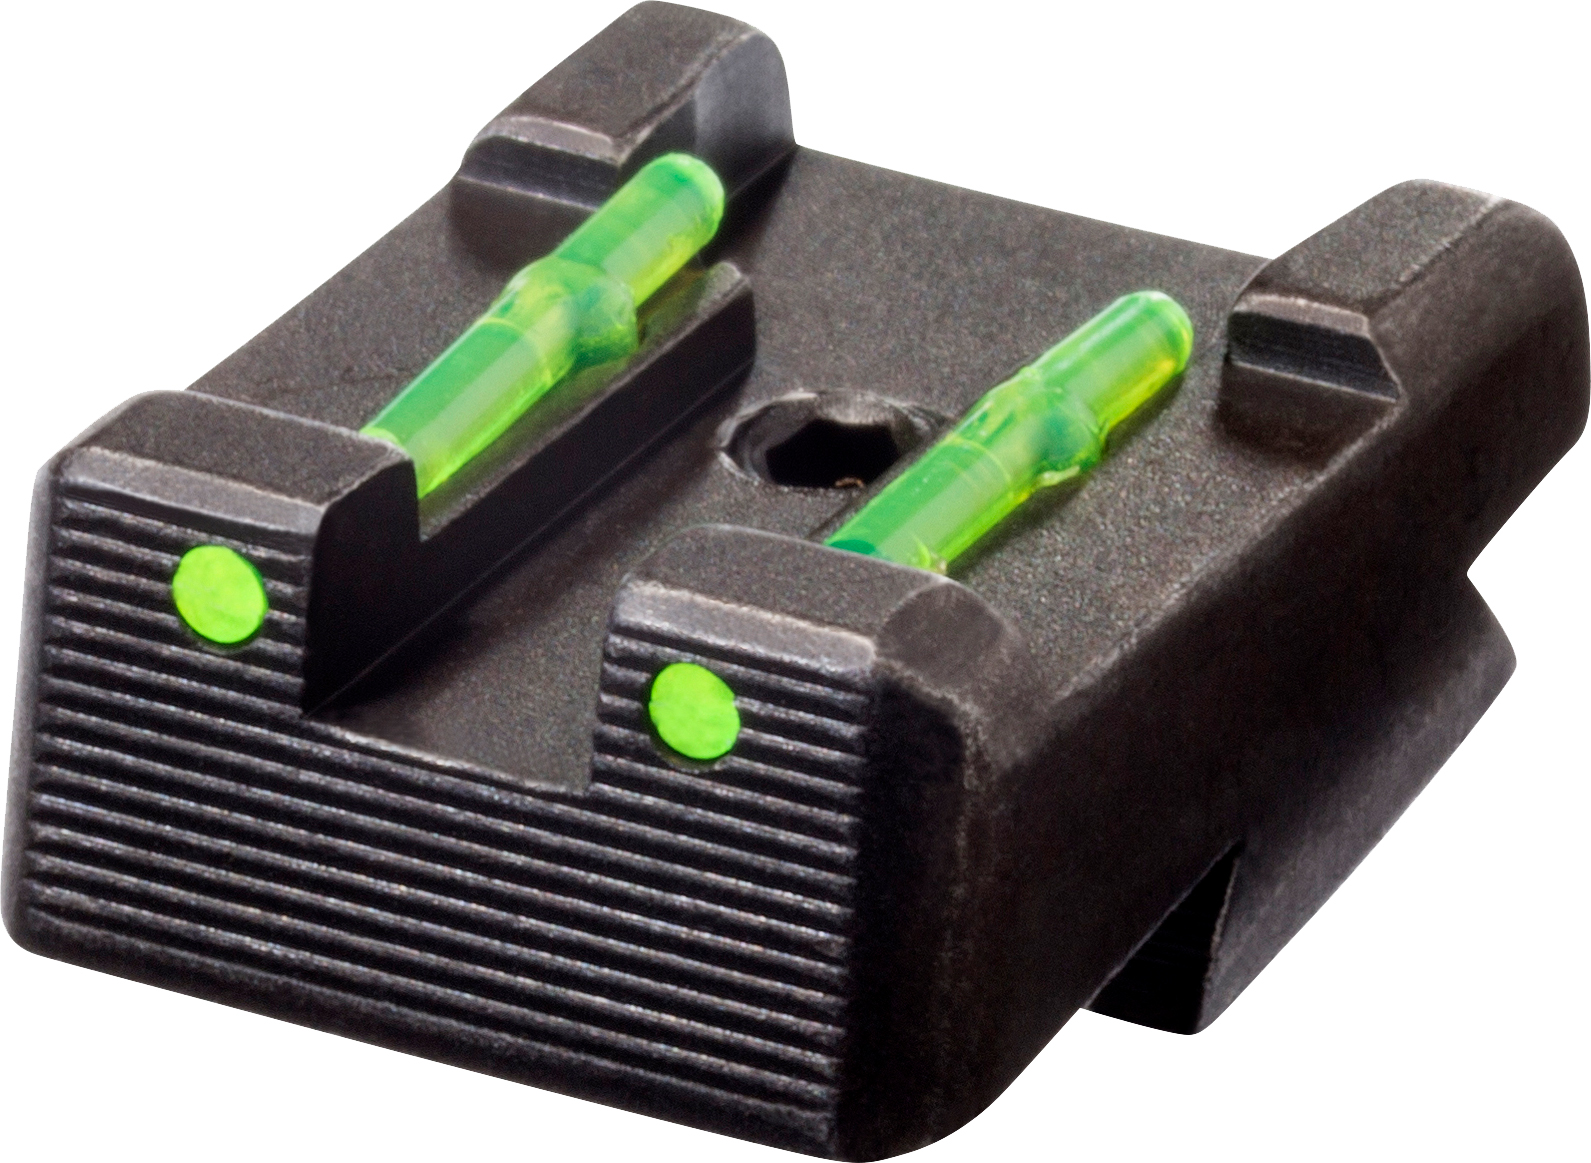 HIVIZ Shooting Systems Taurus PT 1911 Fiber-Optic Rear Sight